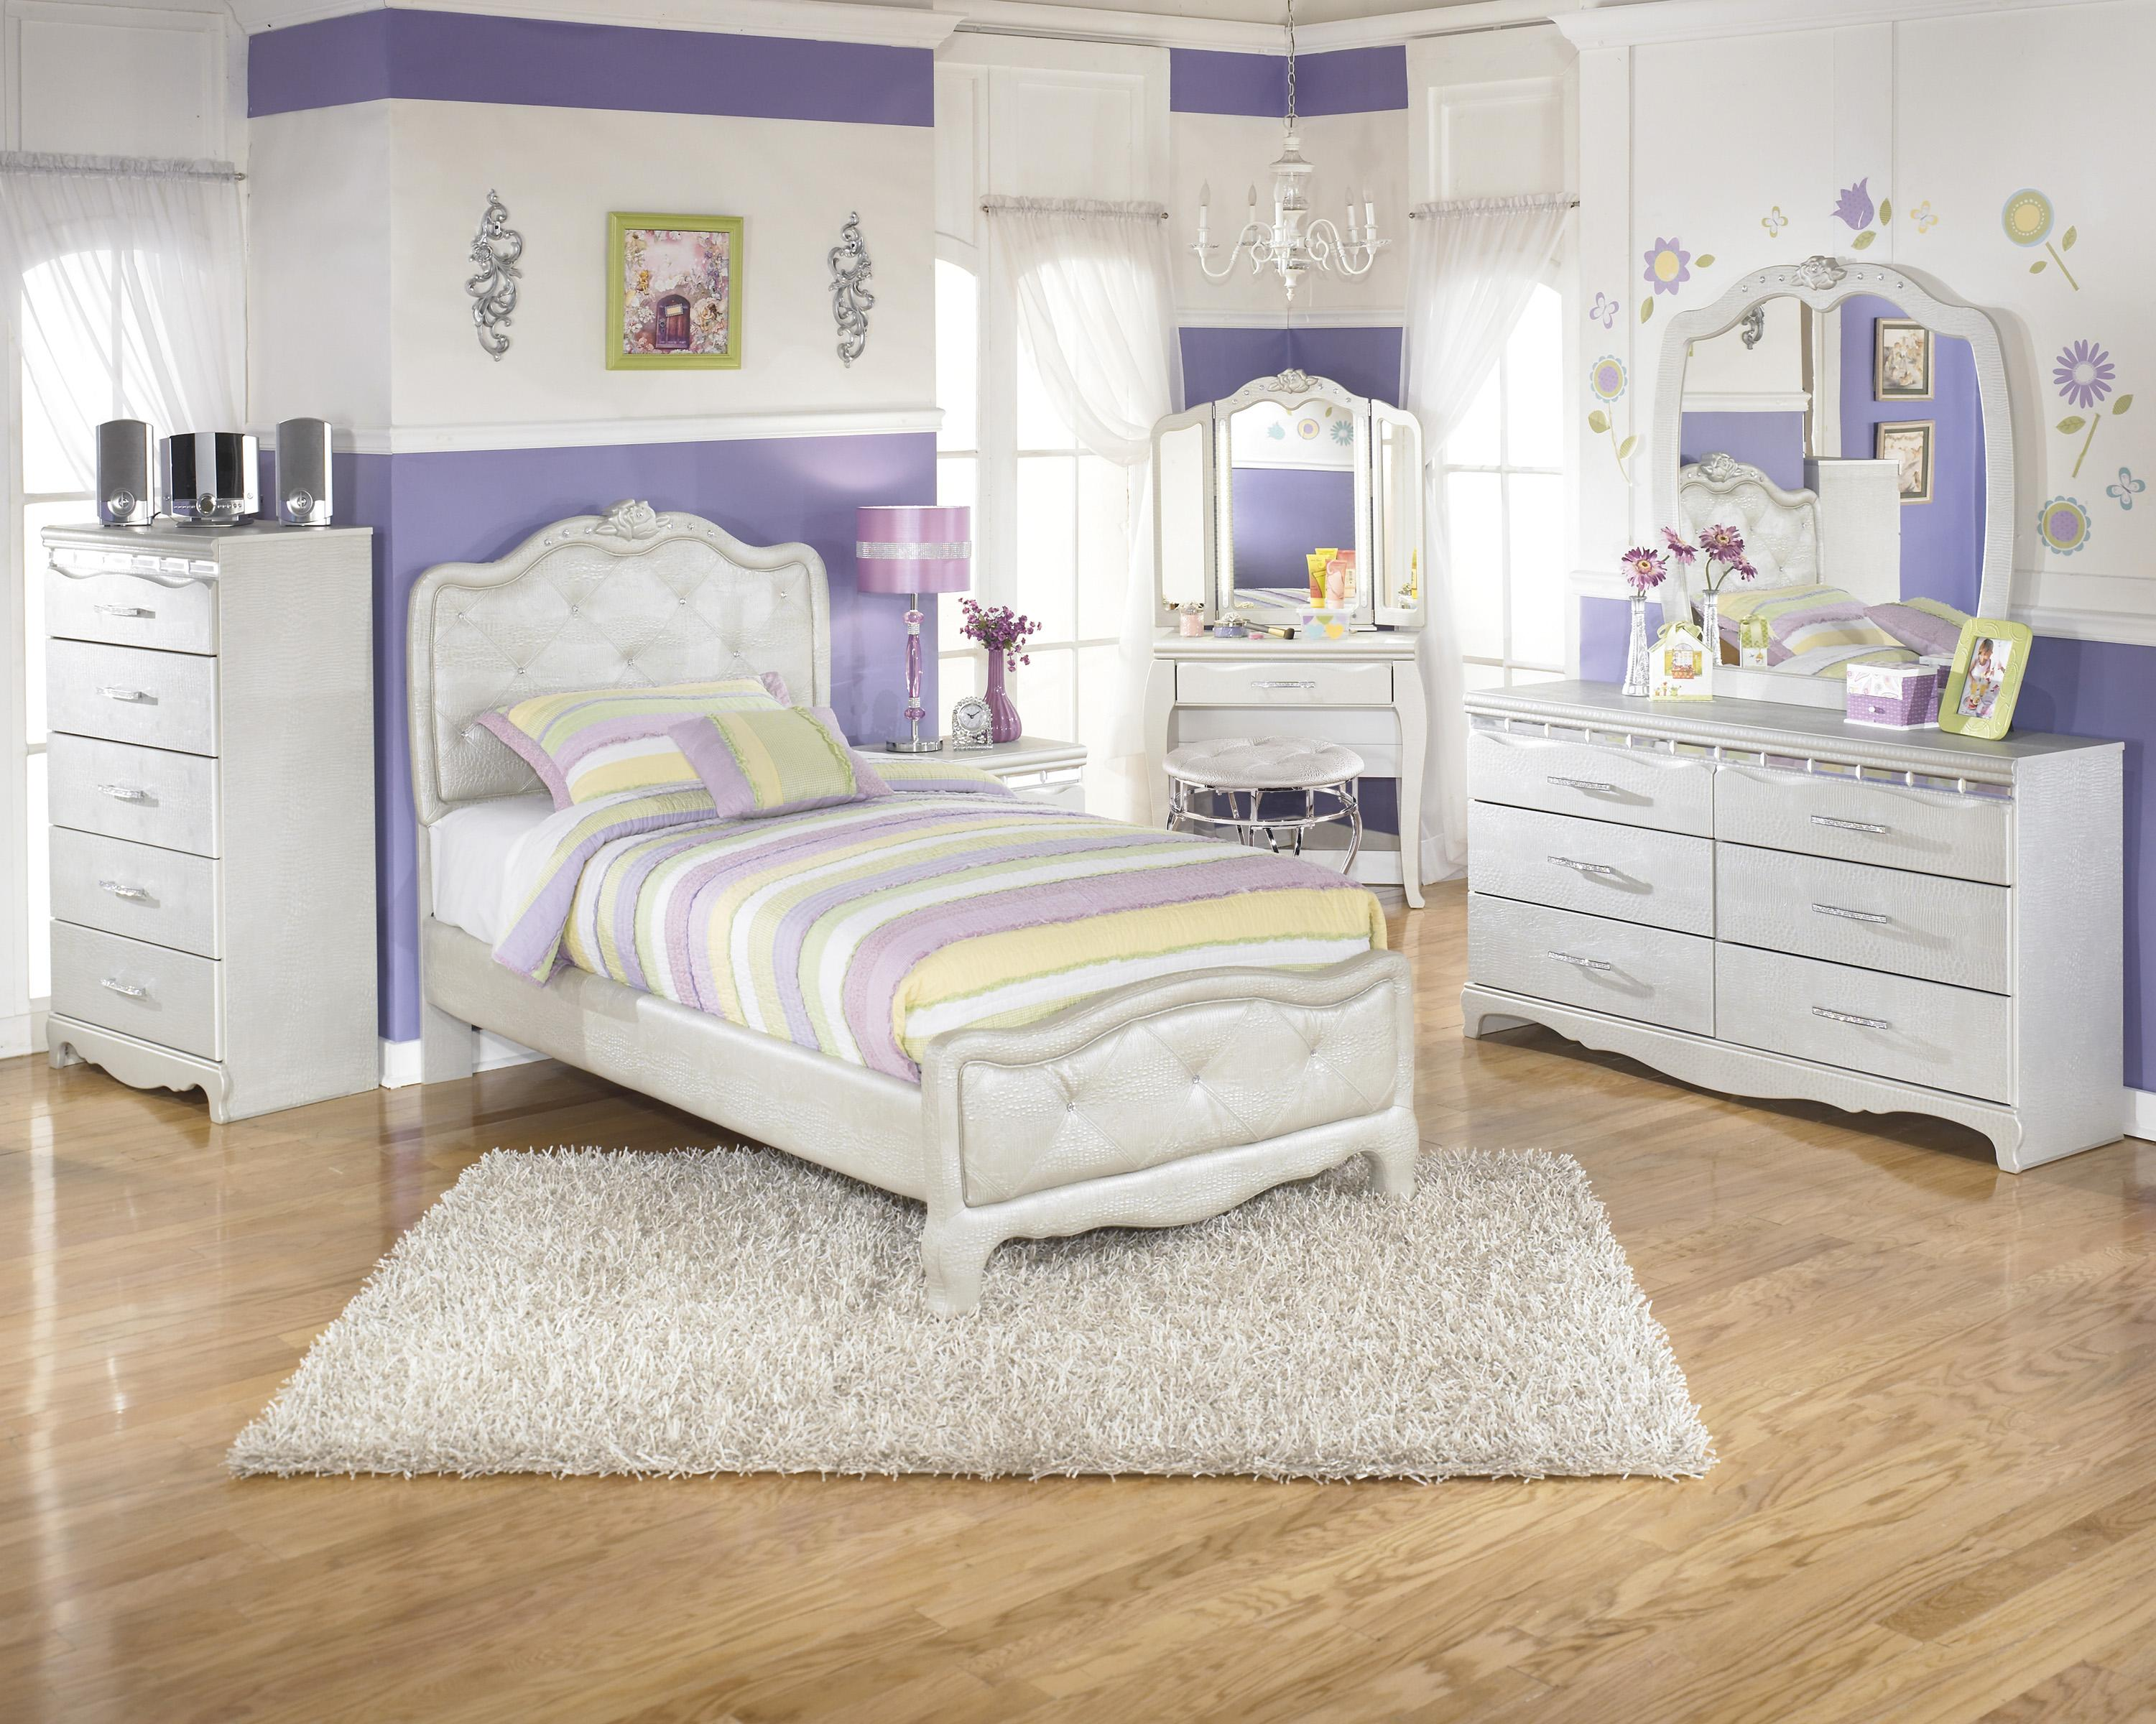 Signature Design by Ashley Zarollina Twin Bedroom Group - Item Number: B182 T Bedroom Group 2